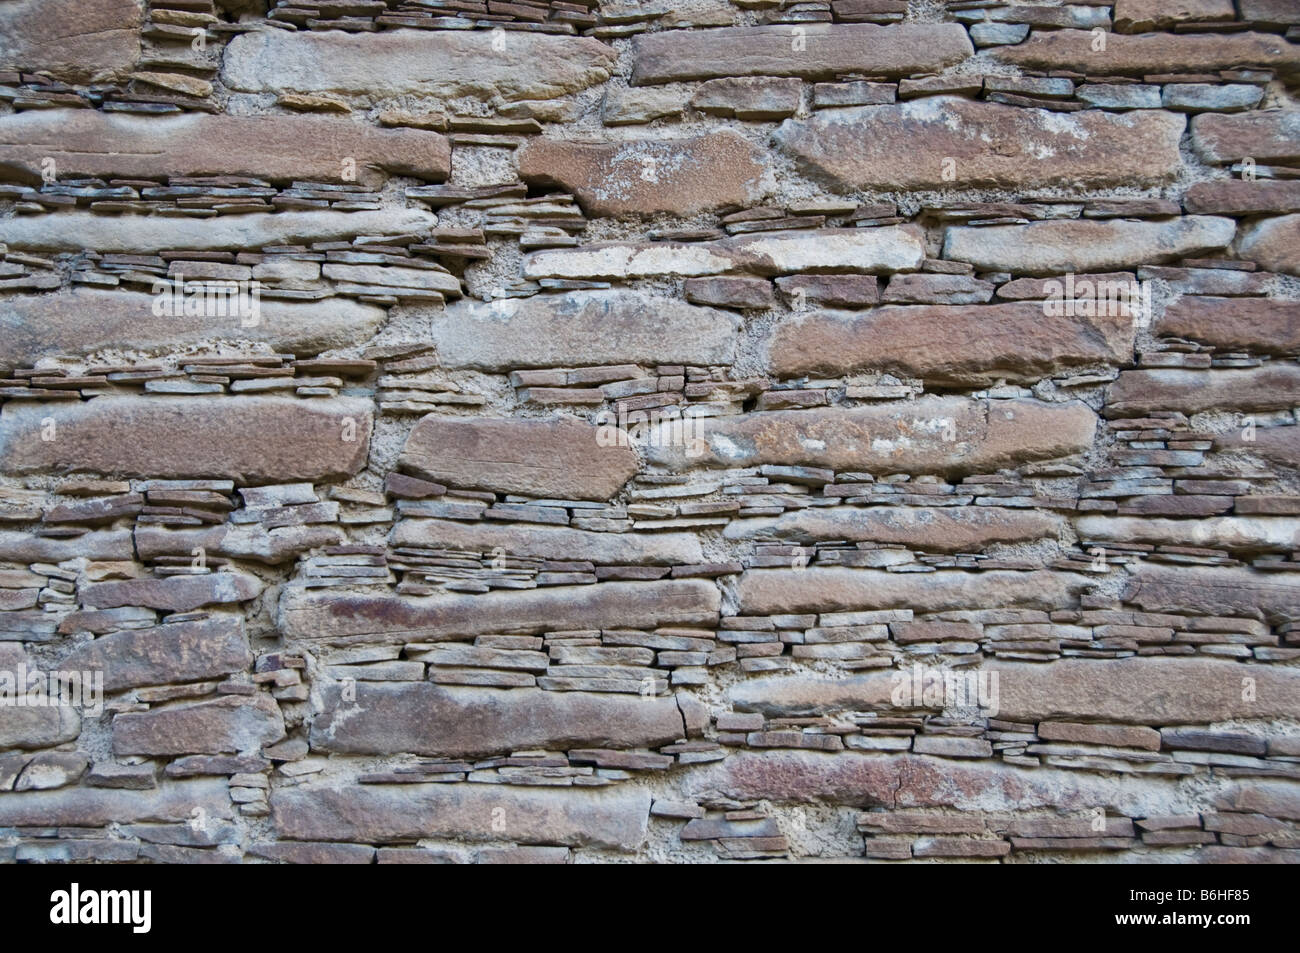 Detail cross section of wall at Chaco Culture National Historical Park New Mexico - Stock Image